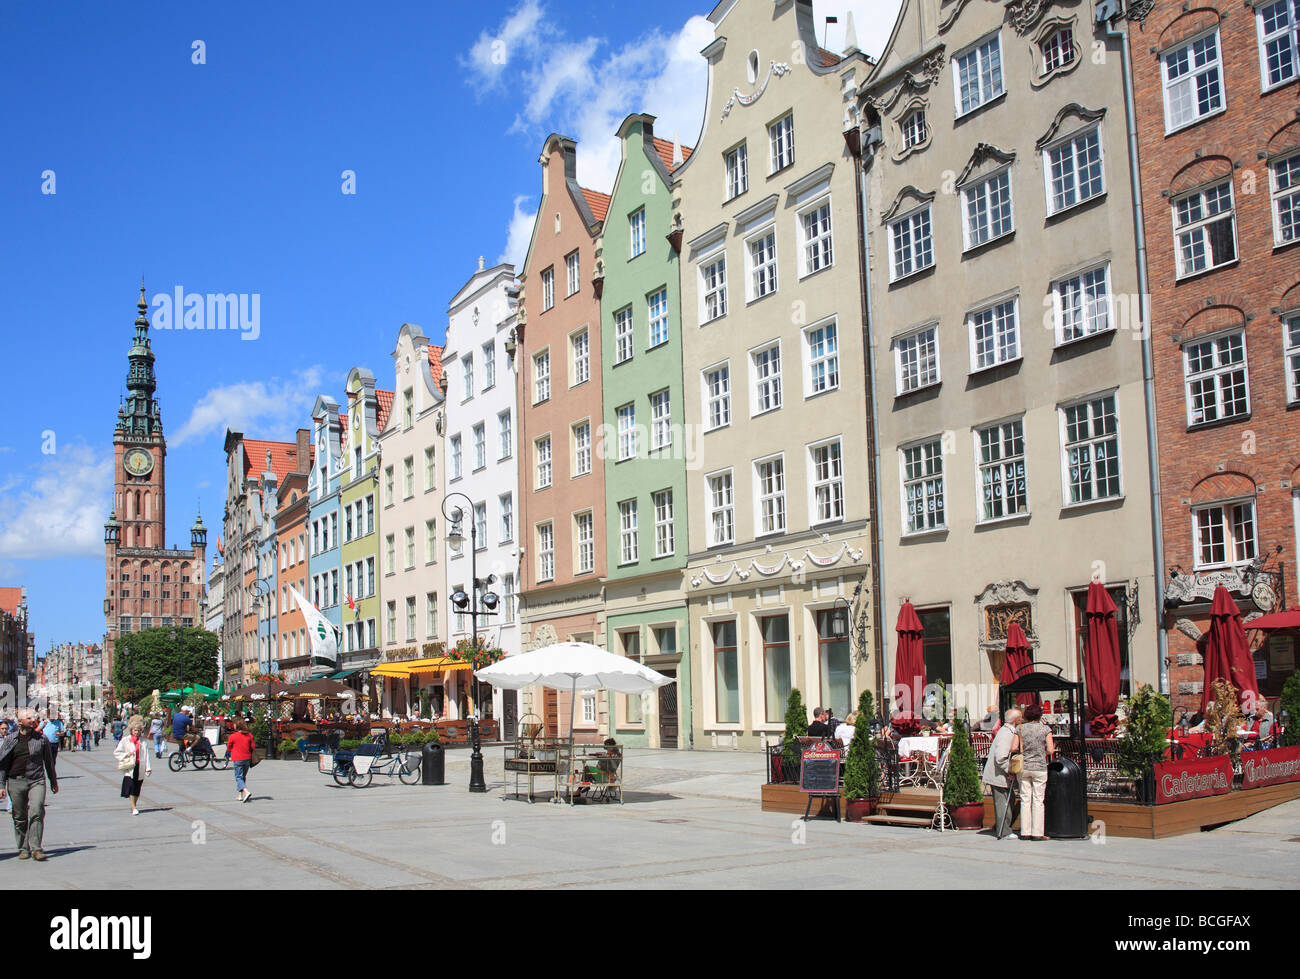 Länggasse High Resolution Stock Photography And Images Alamy